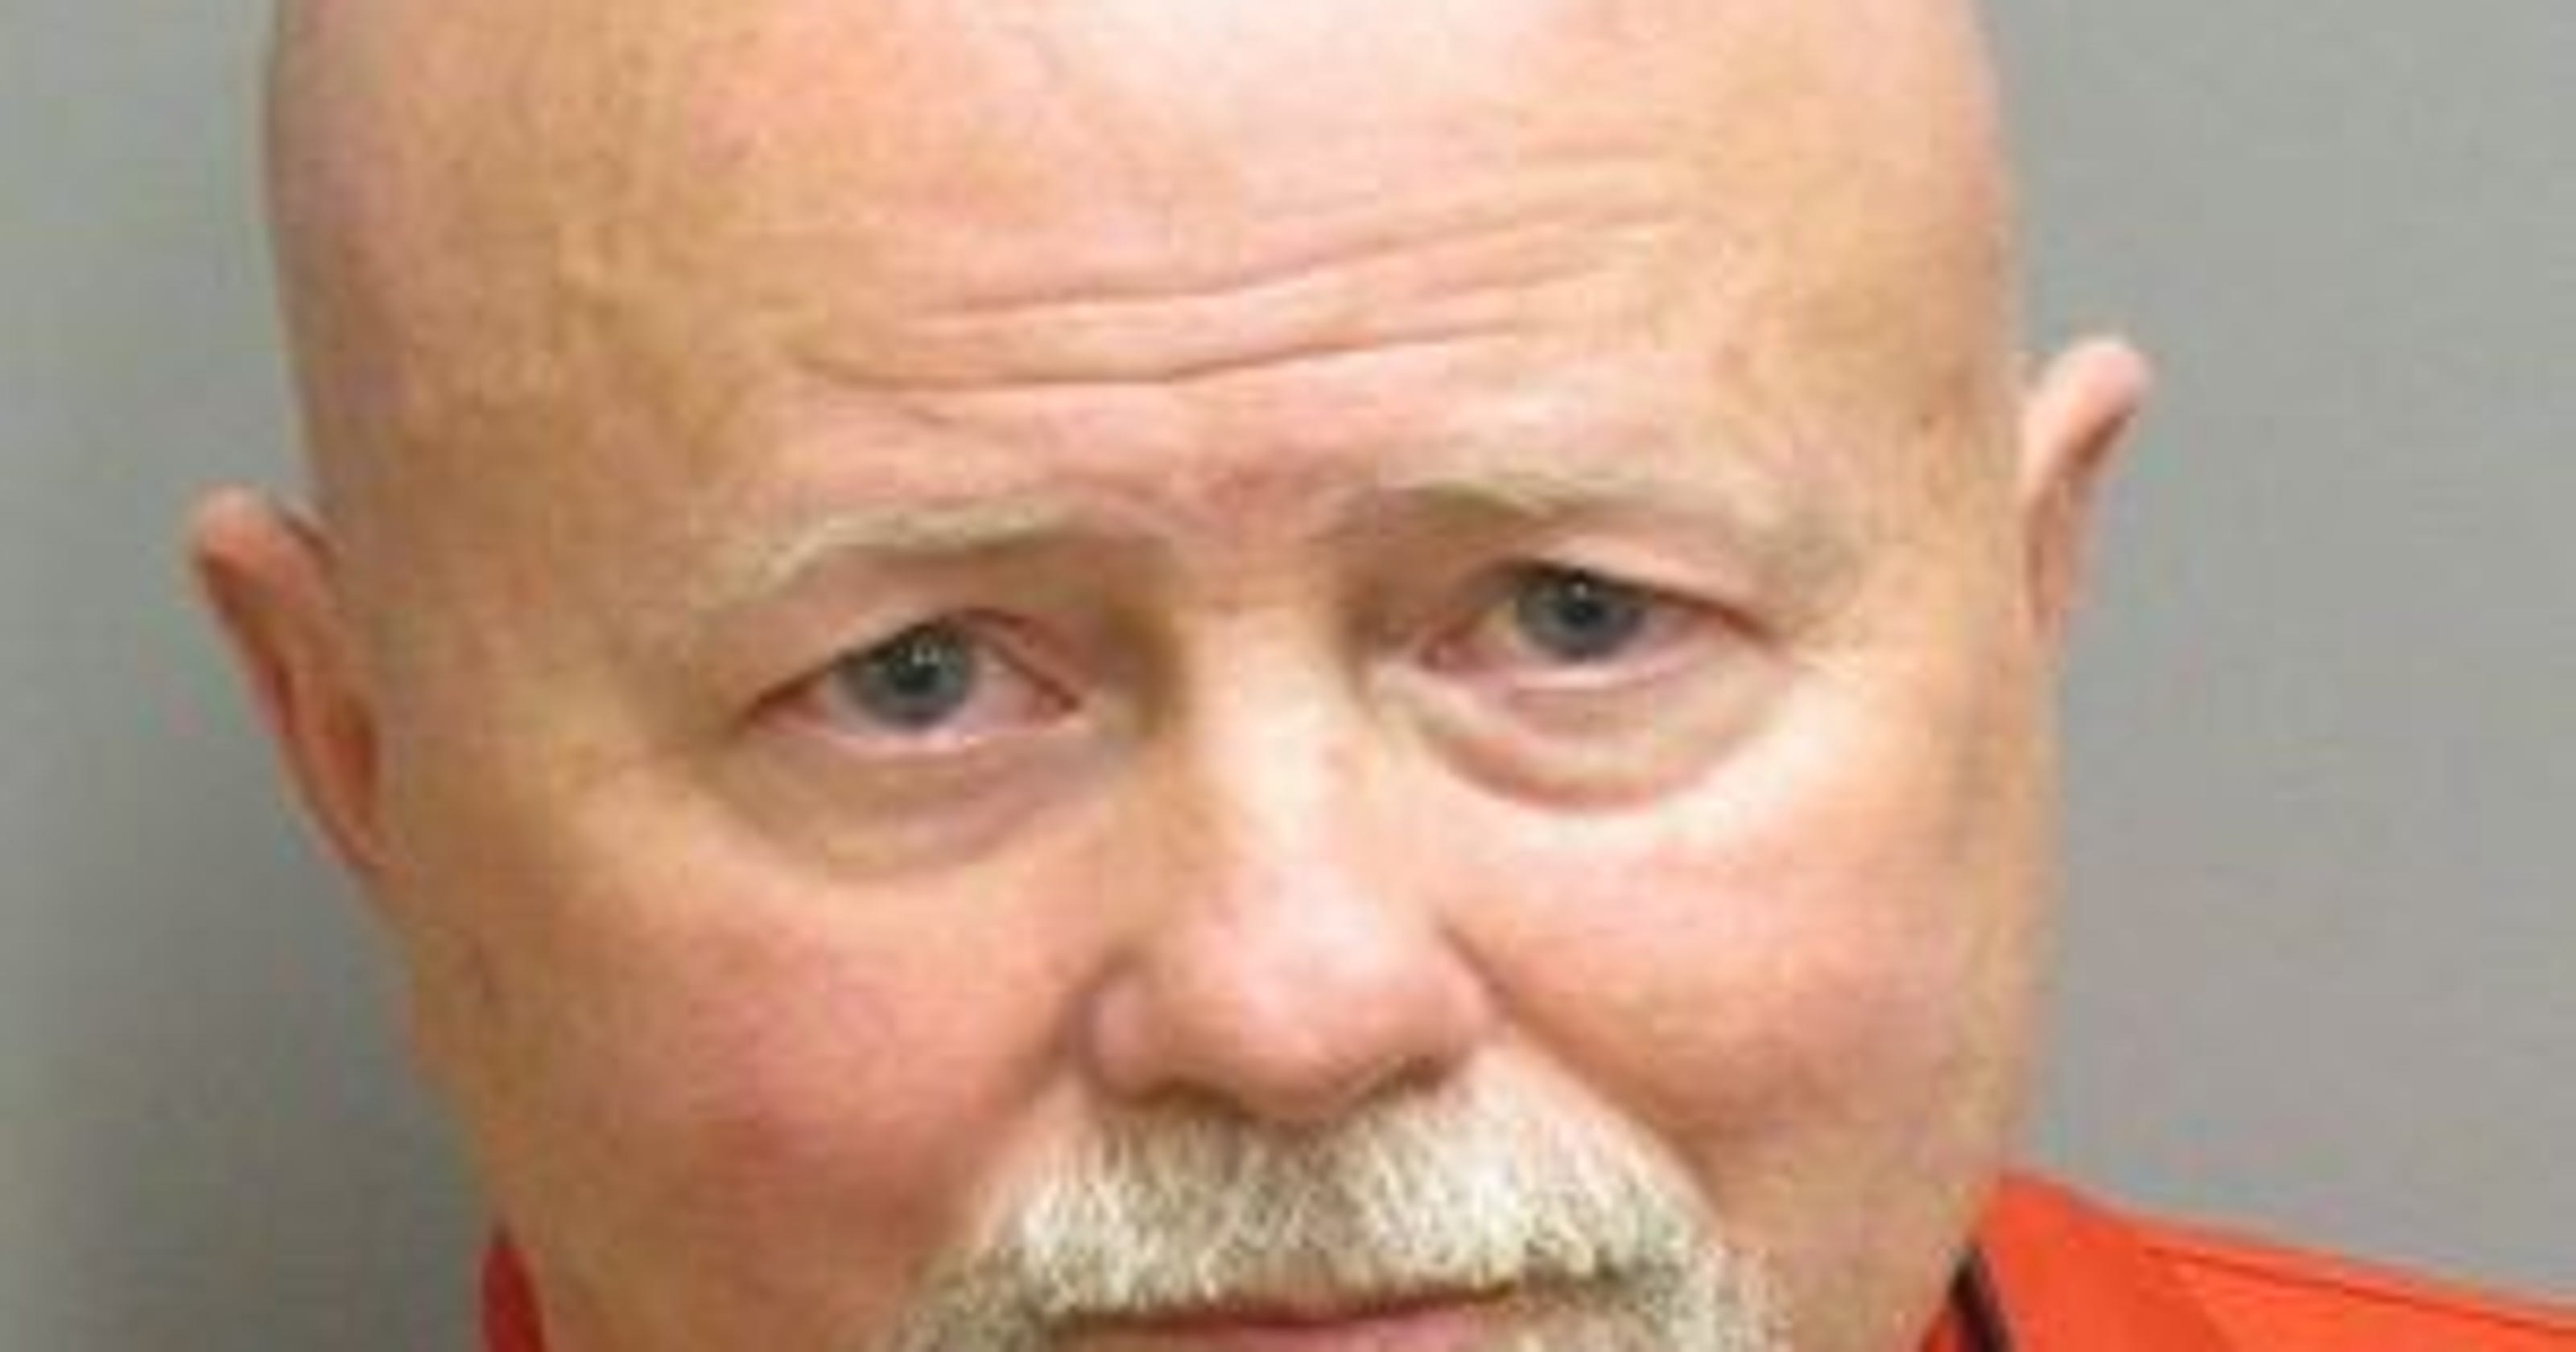 Grand jury indicts former DA investigator on sexual abuse ...